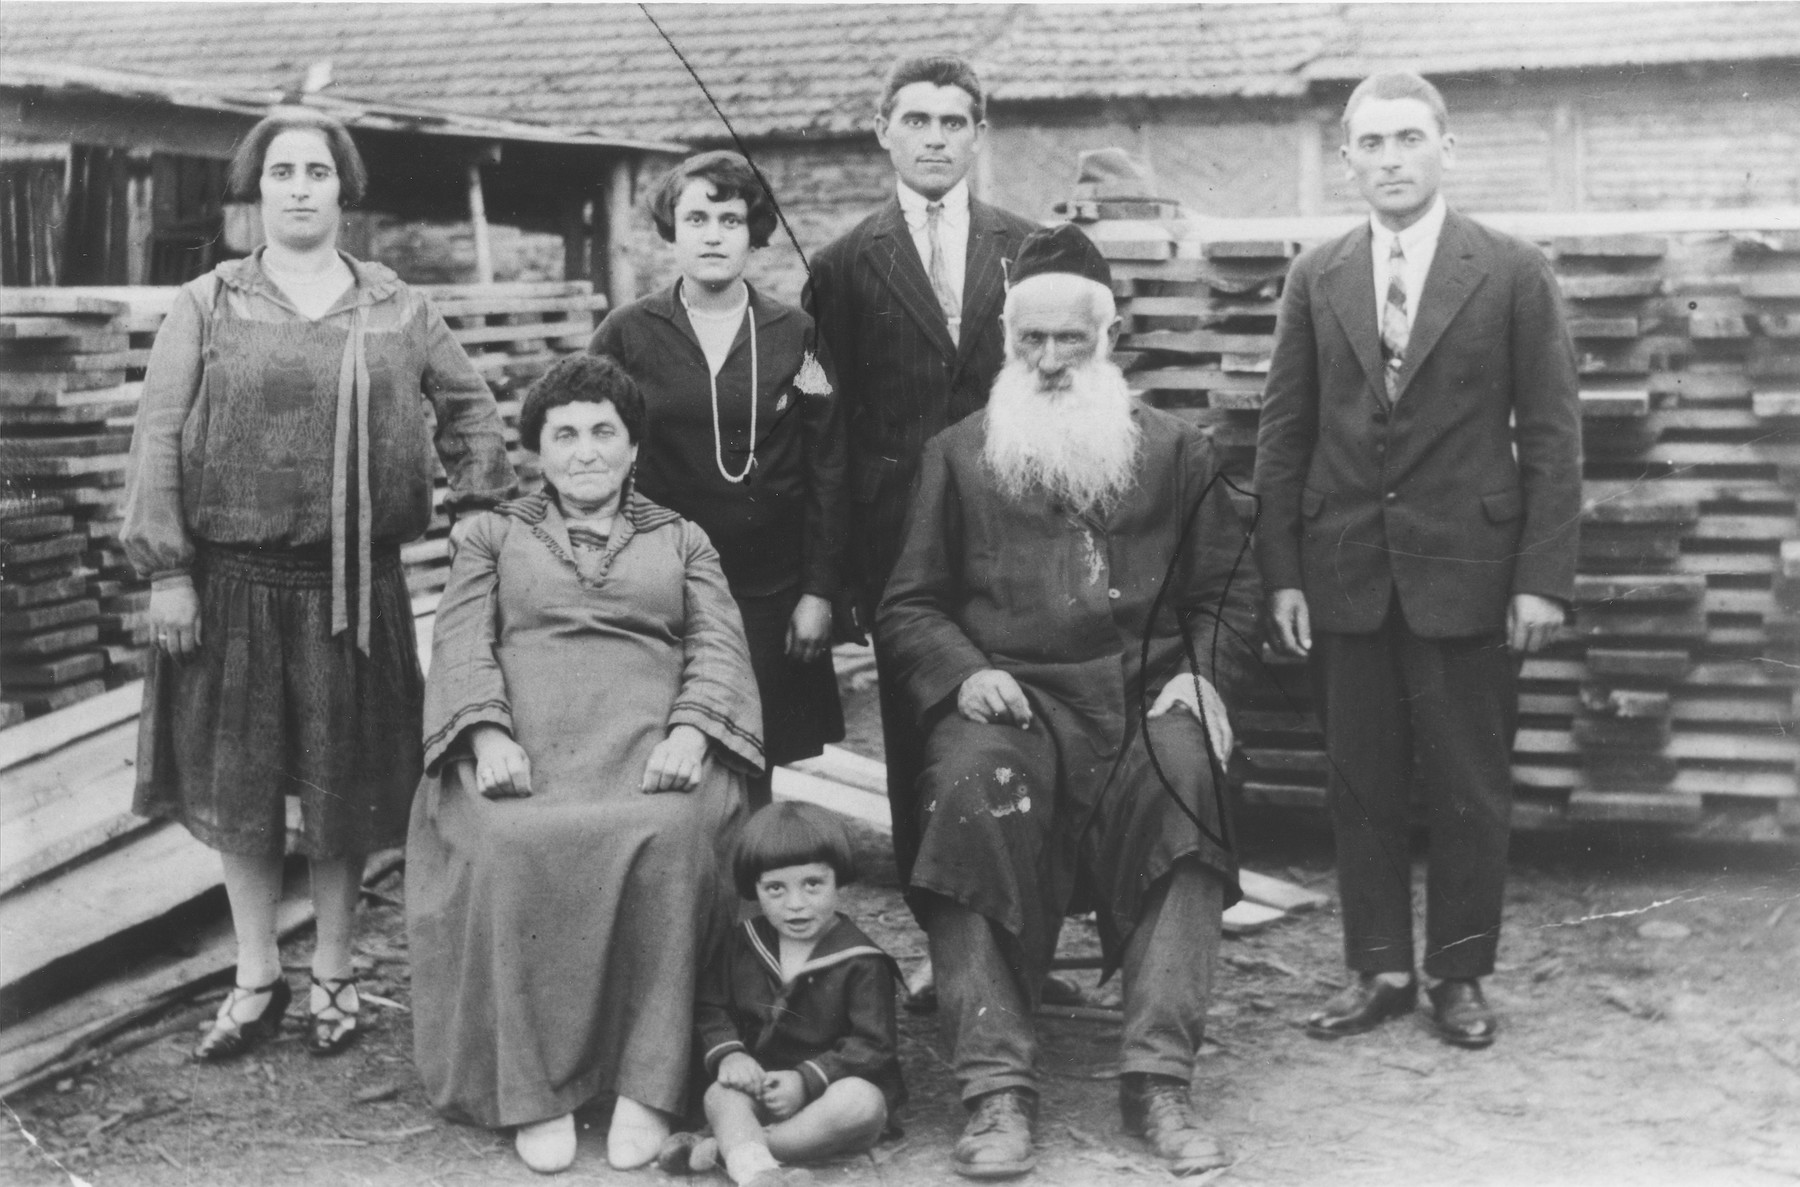 Members of the Rakowski and Banach families pose in their lumberyard in Kazimierza Wielka.  Pictured from left to right are: Frania, Ita, Jozef and Moshe Dawid Rakowski, and Jozef Banach.